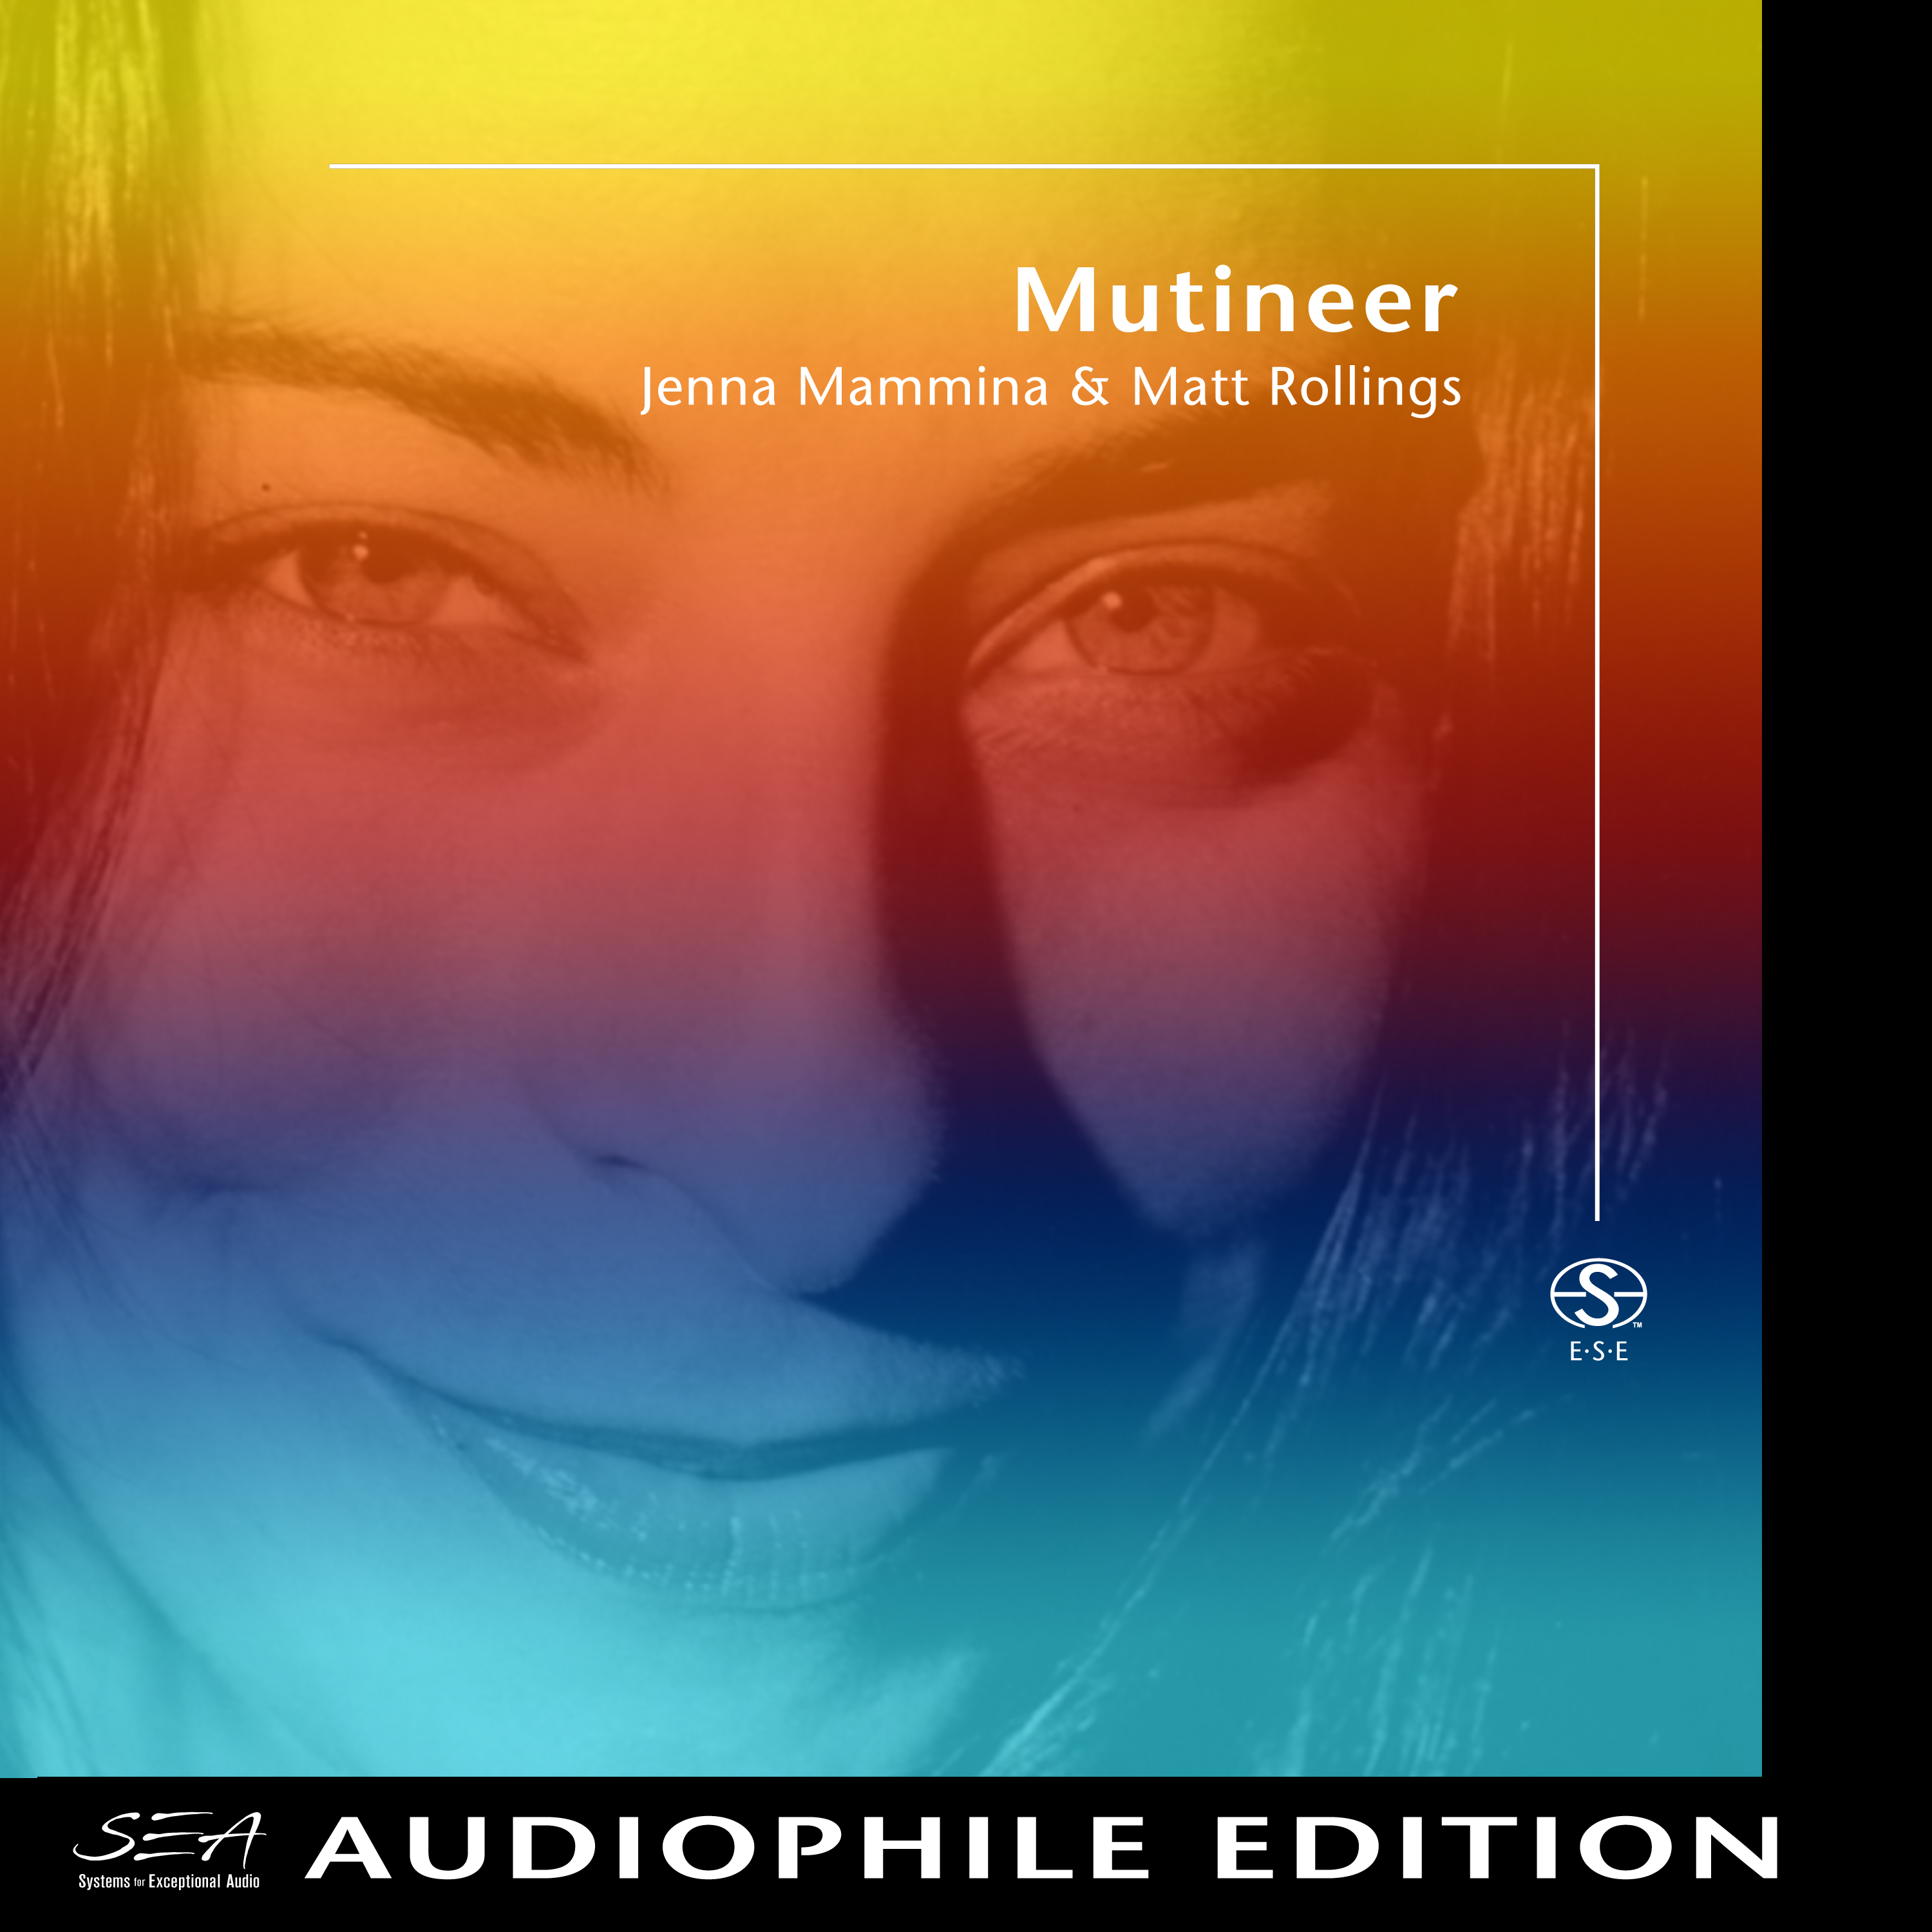 Jenna Mammina & Matt Rollings - Mutineer - Cover Image